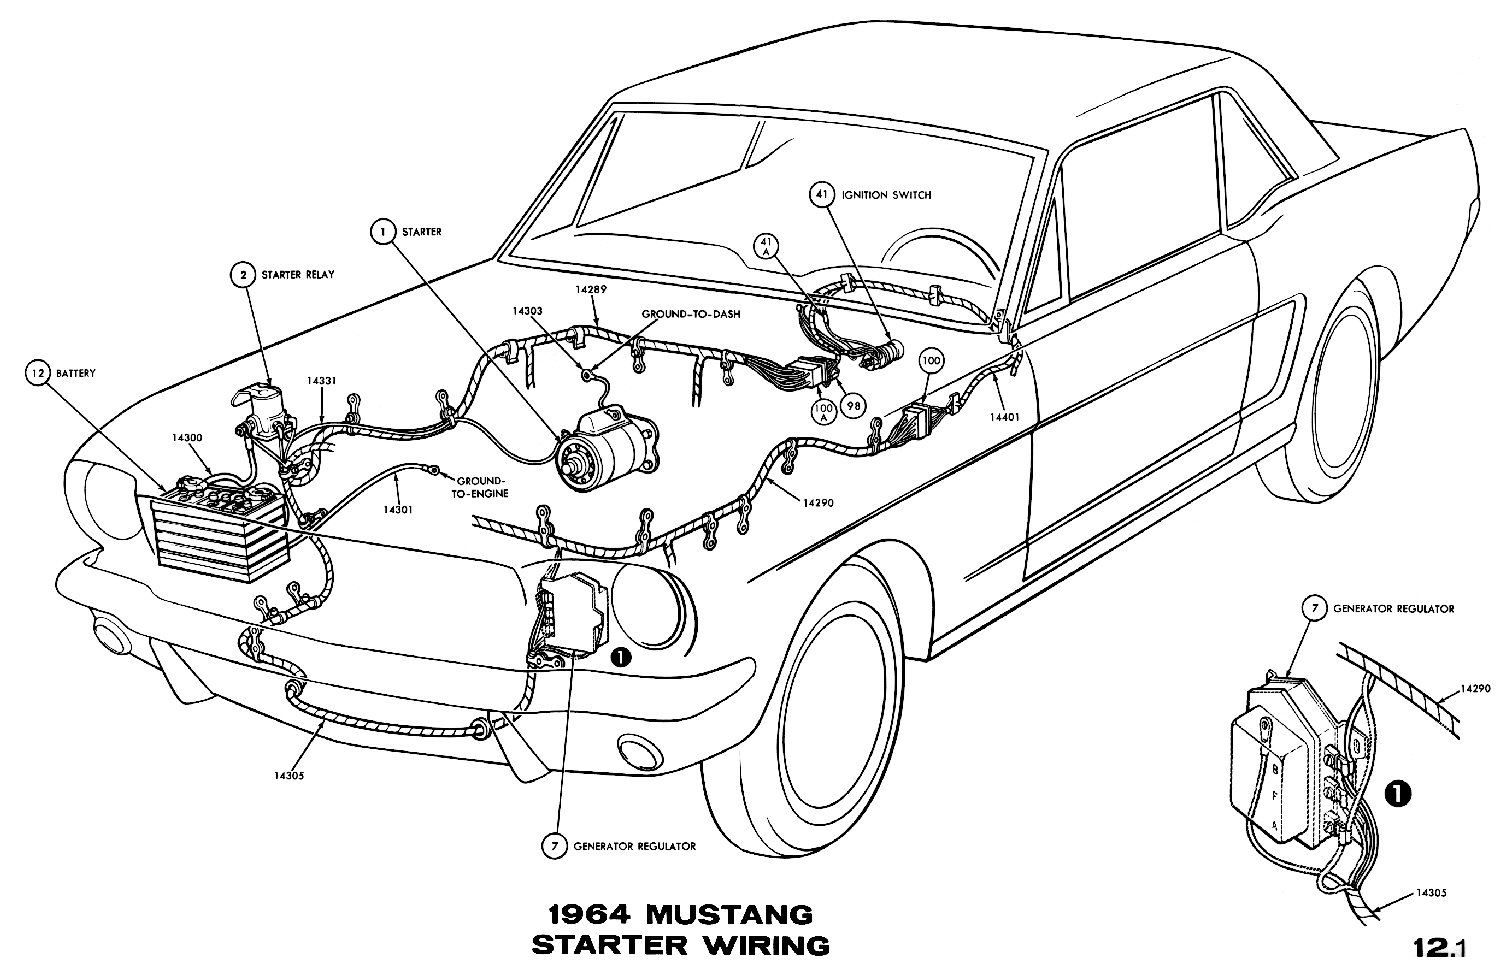 1964 Mustang Wiring Diagrams Average Joe Restoration Dual Battery Switch Diagram Light Sm1964d Starter Pictorial Or Schematic